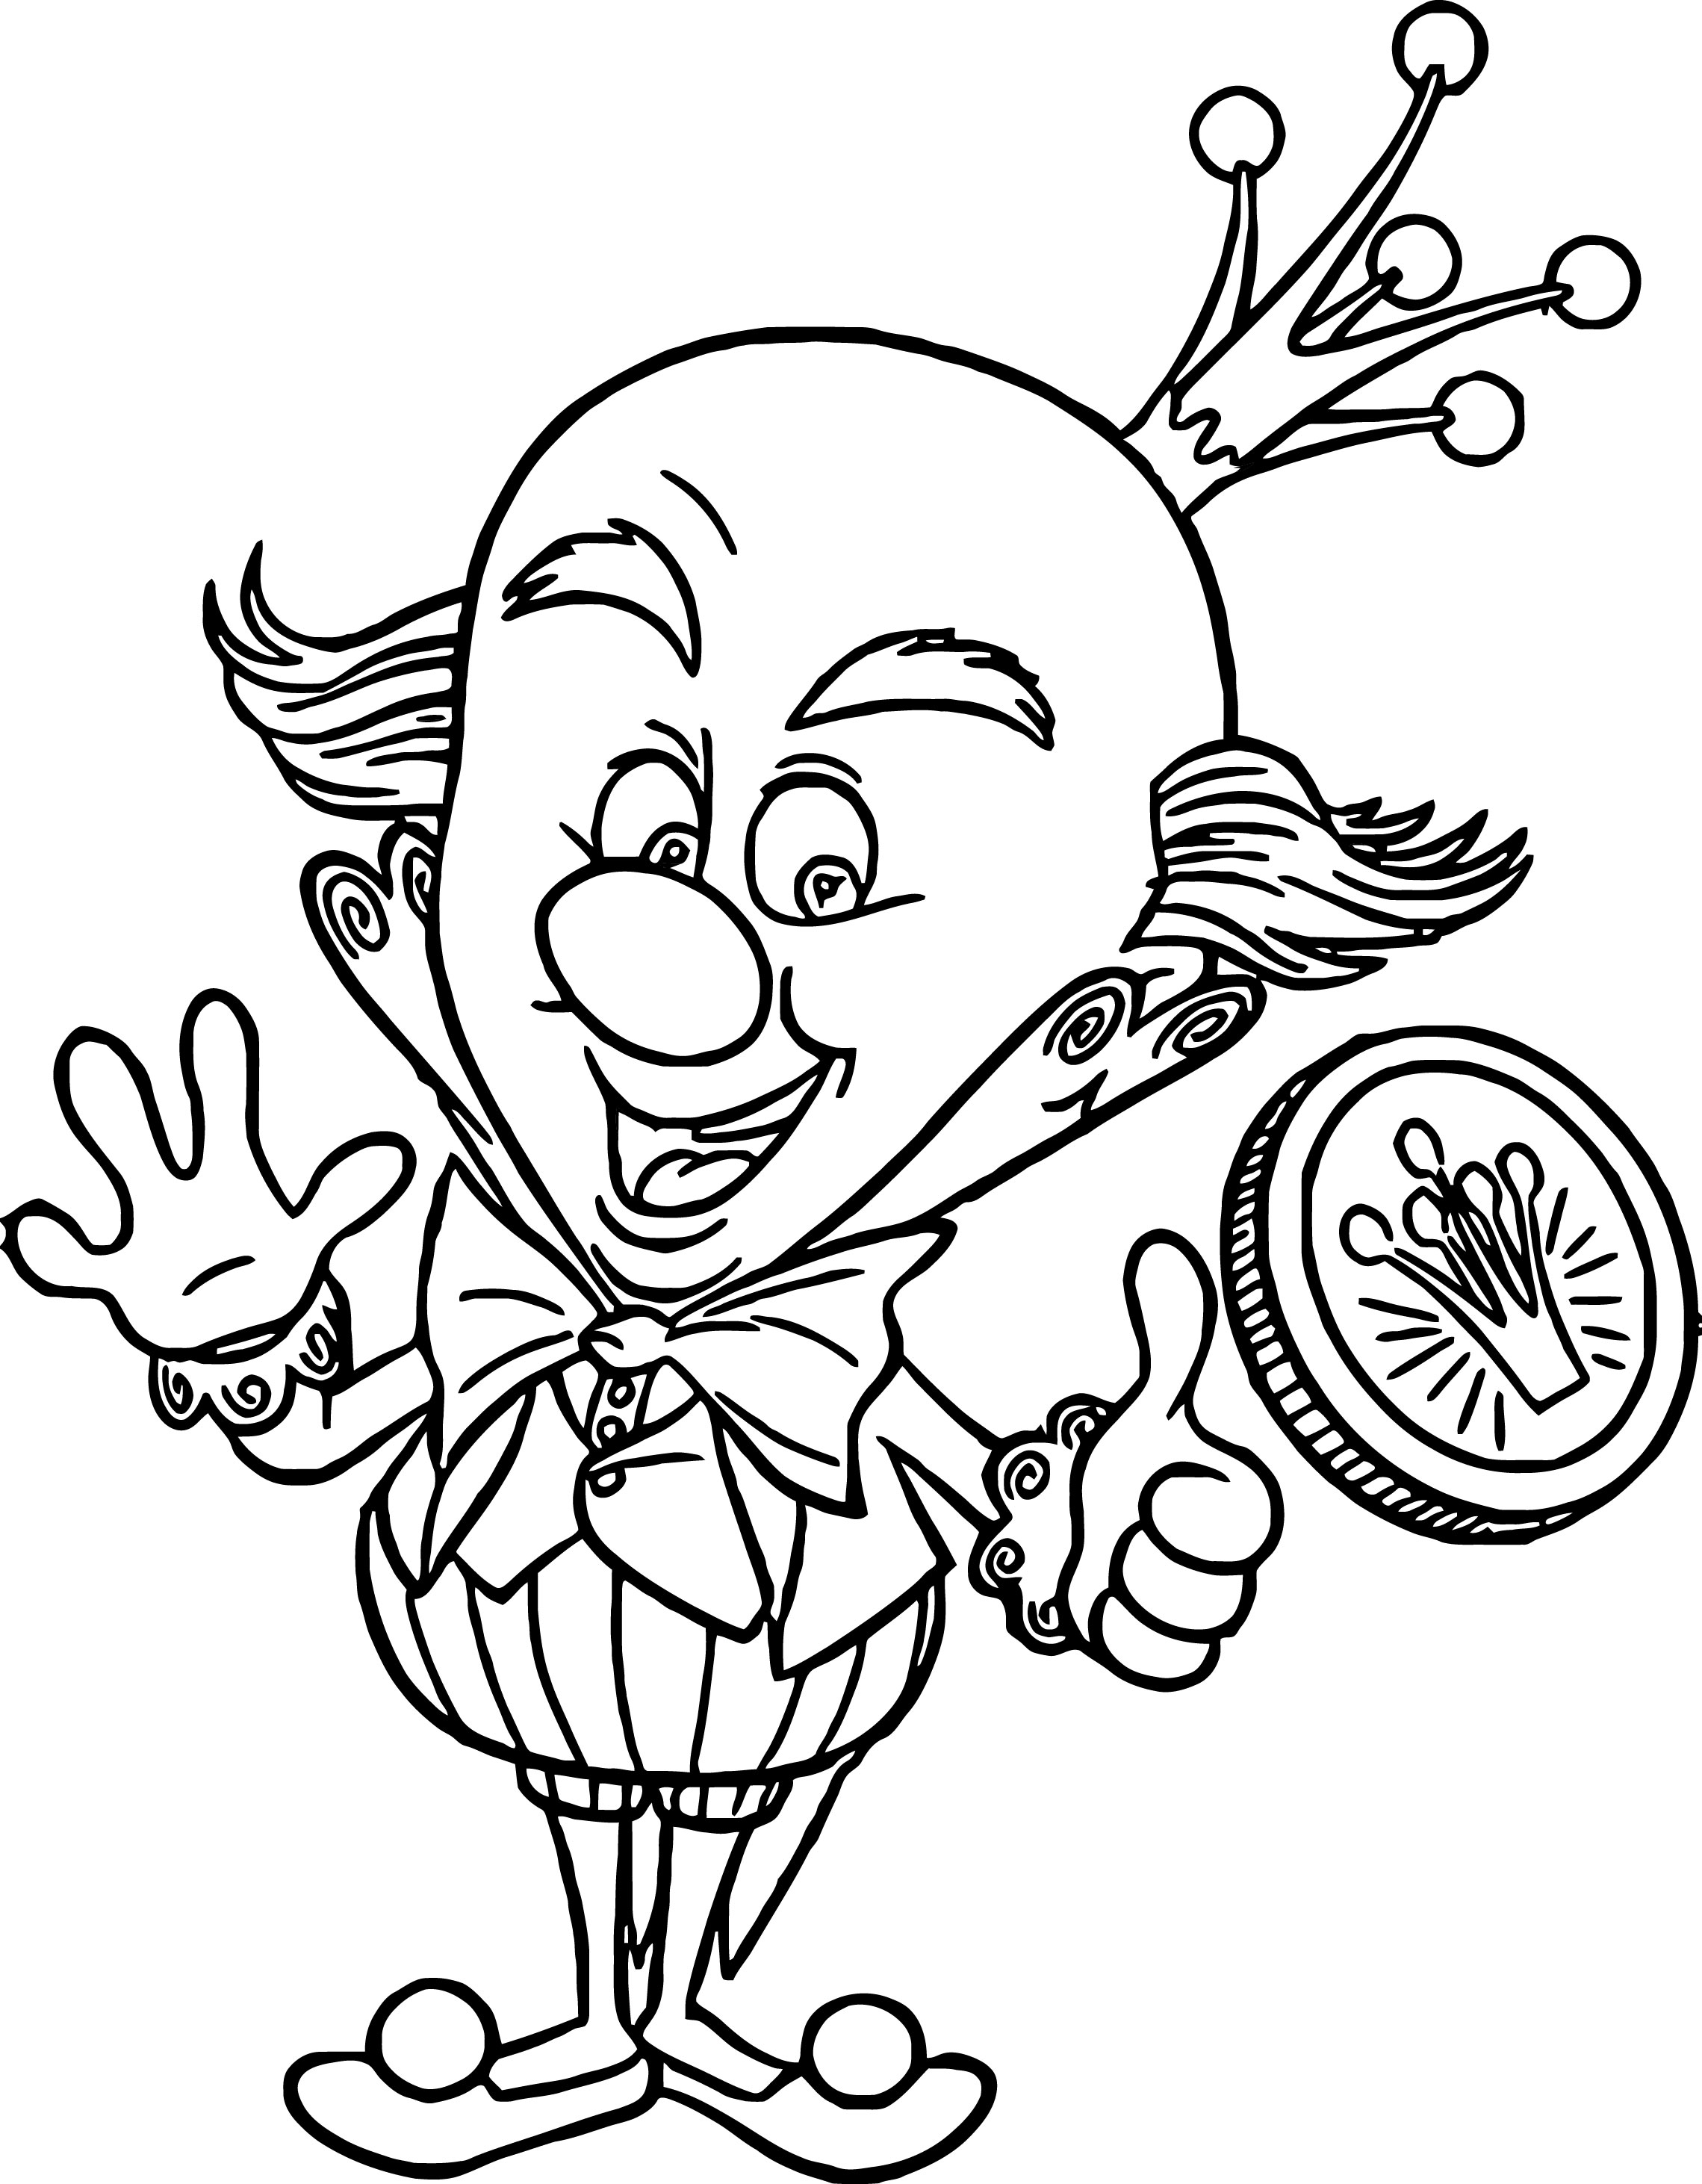 wreck it ralph king candy medal coloring page wecoloringpage